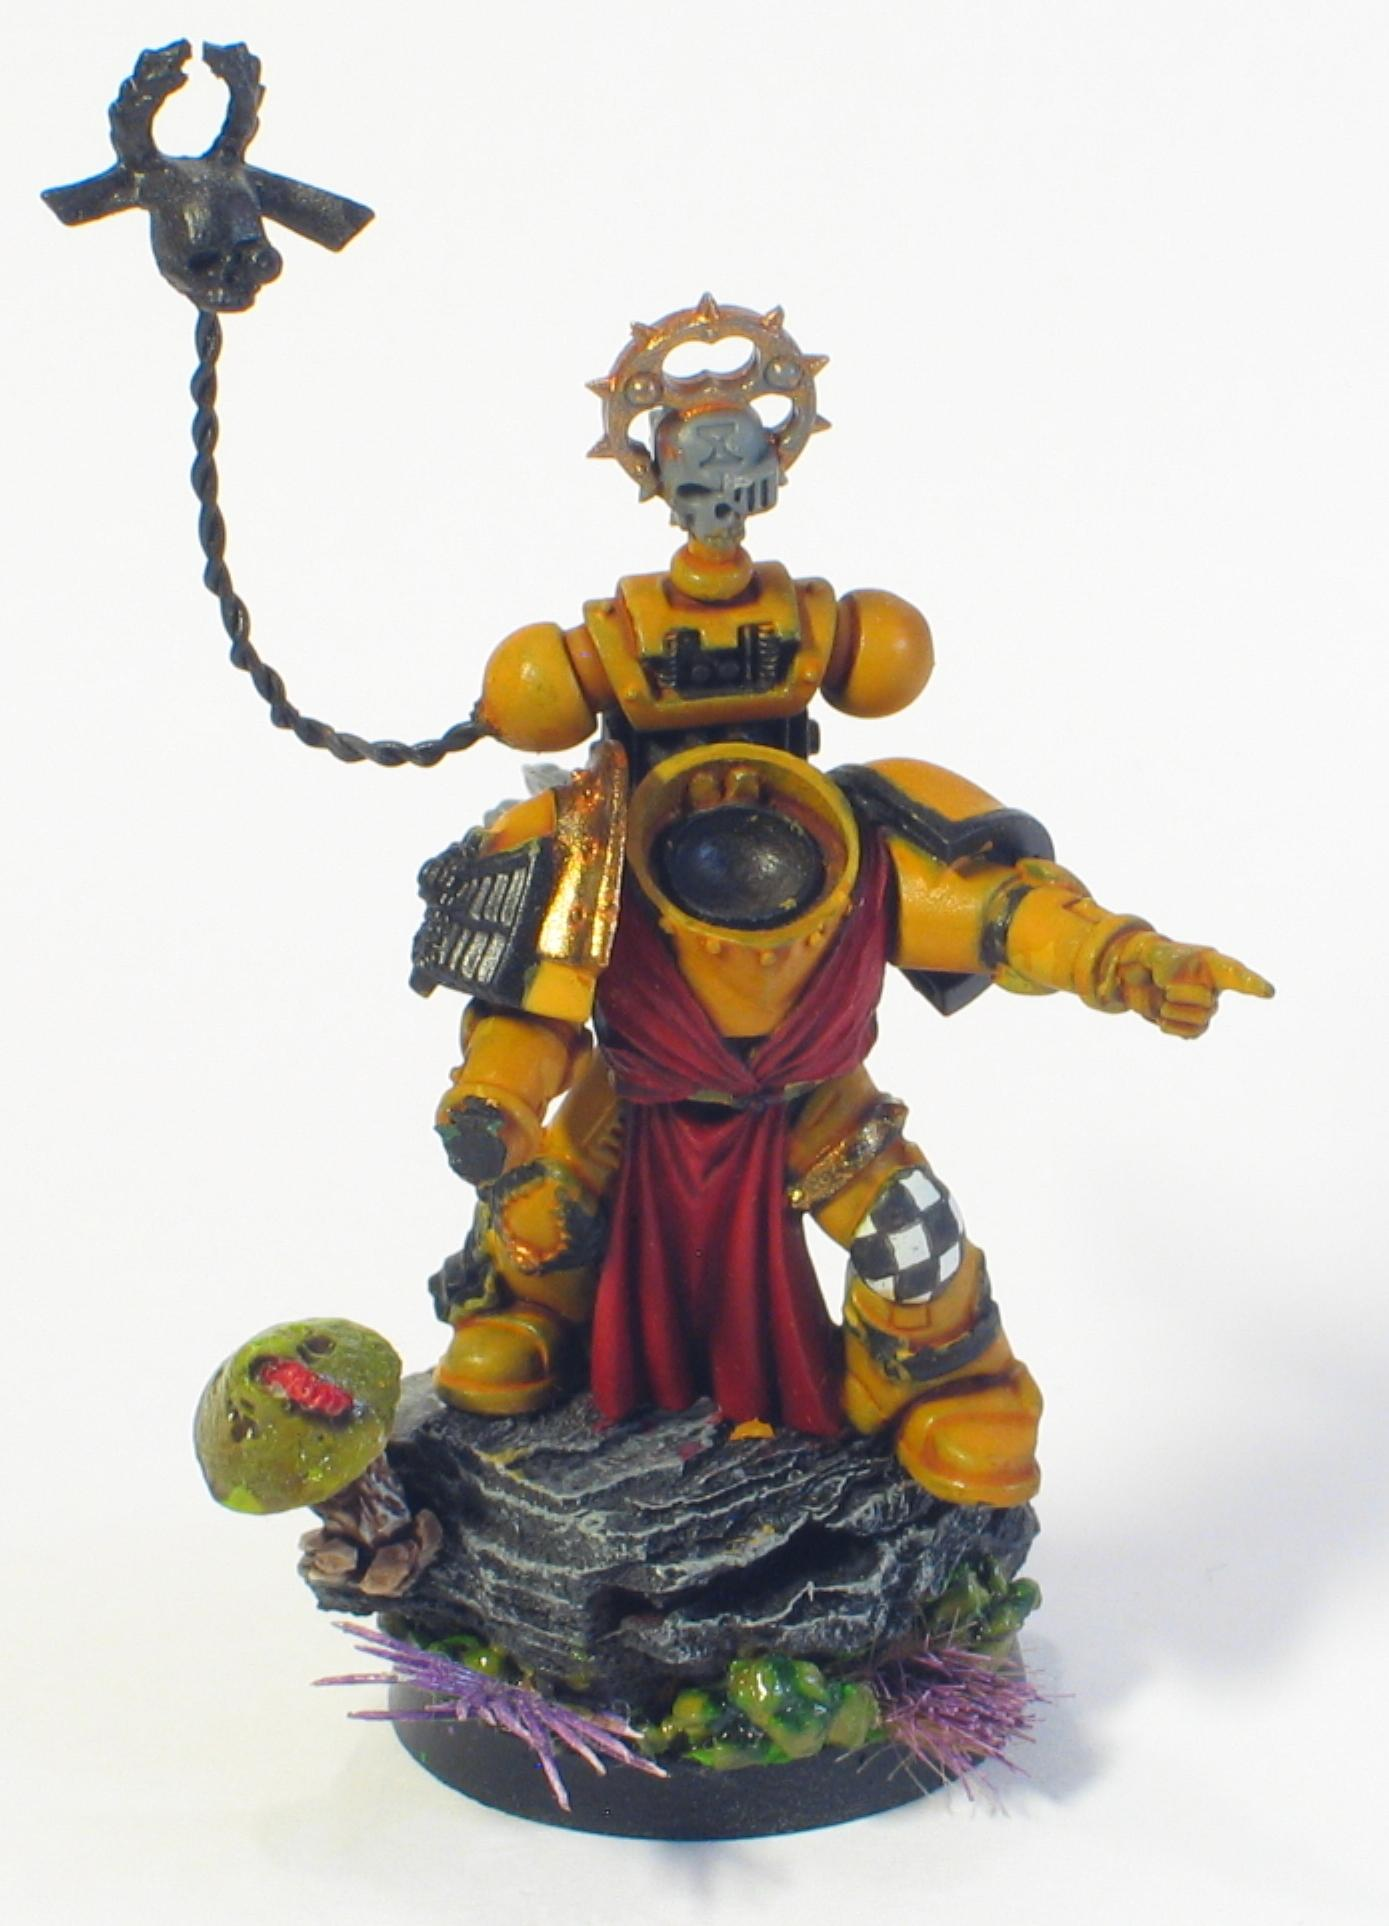 Character, Imperial Fists, Space Marines